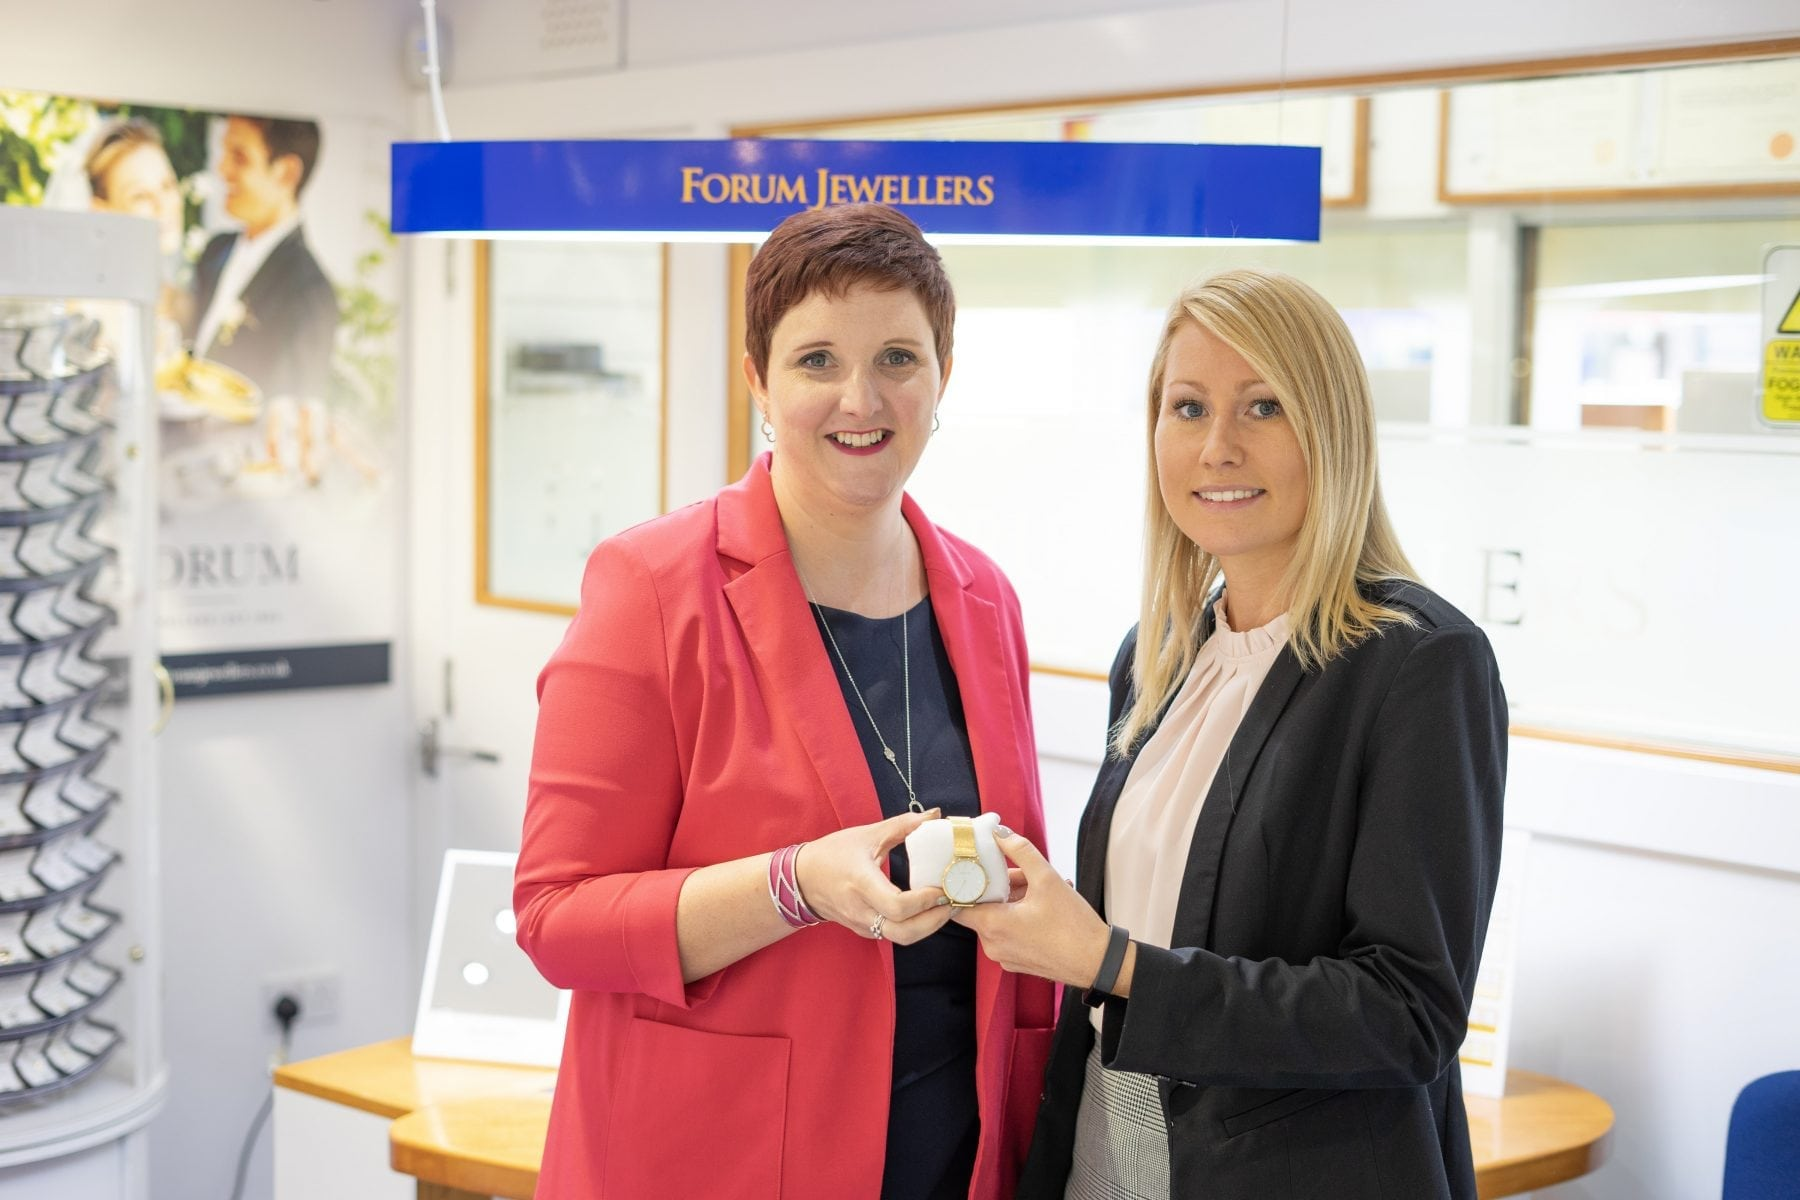 Helen of Forum Jewellers and Danielle